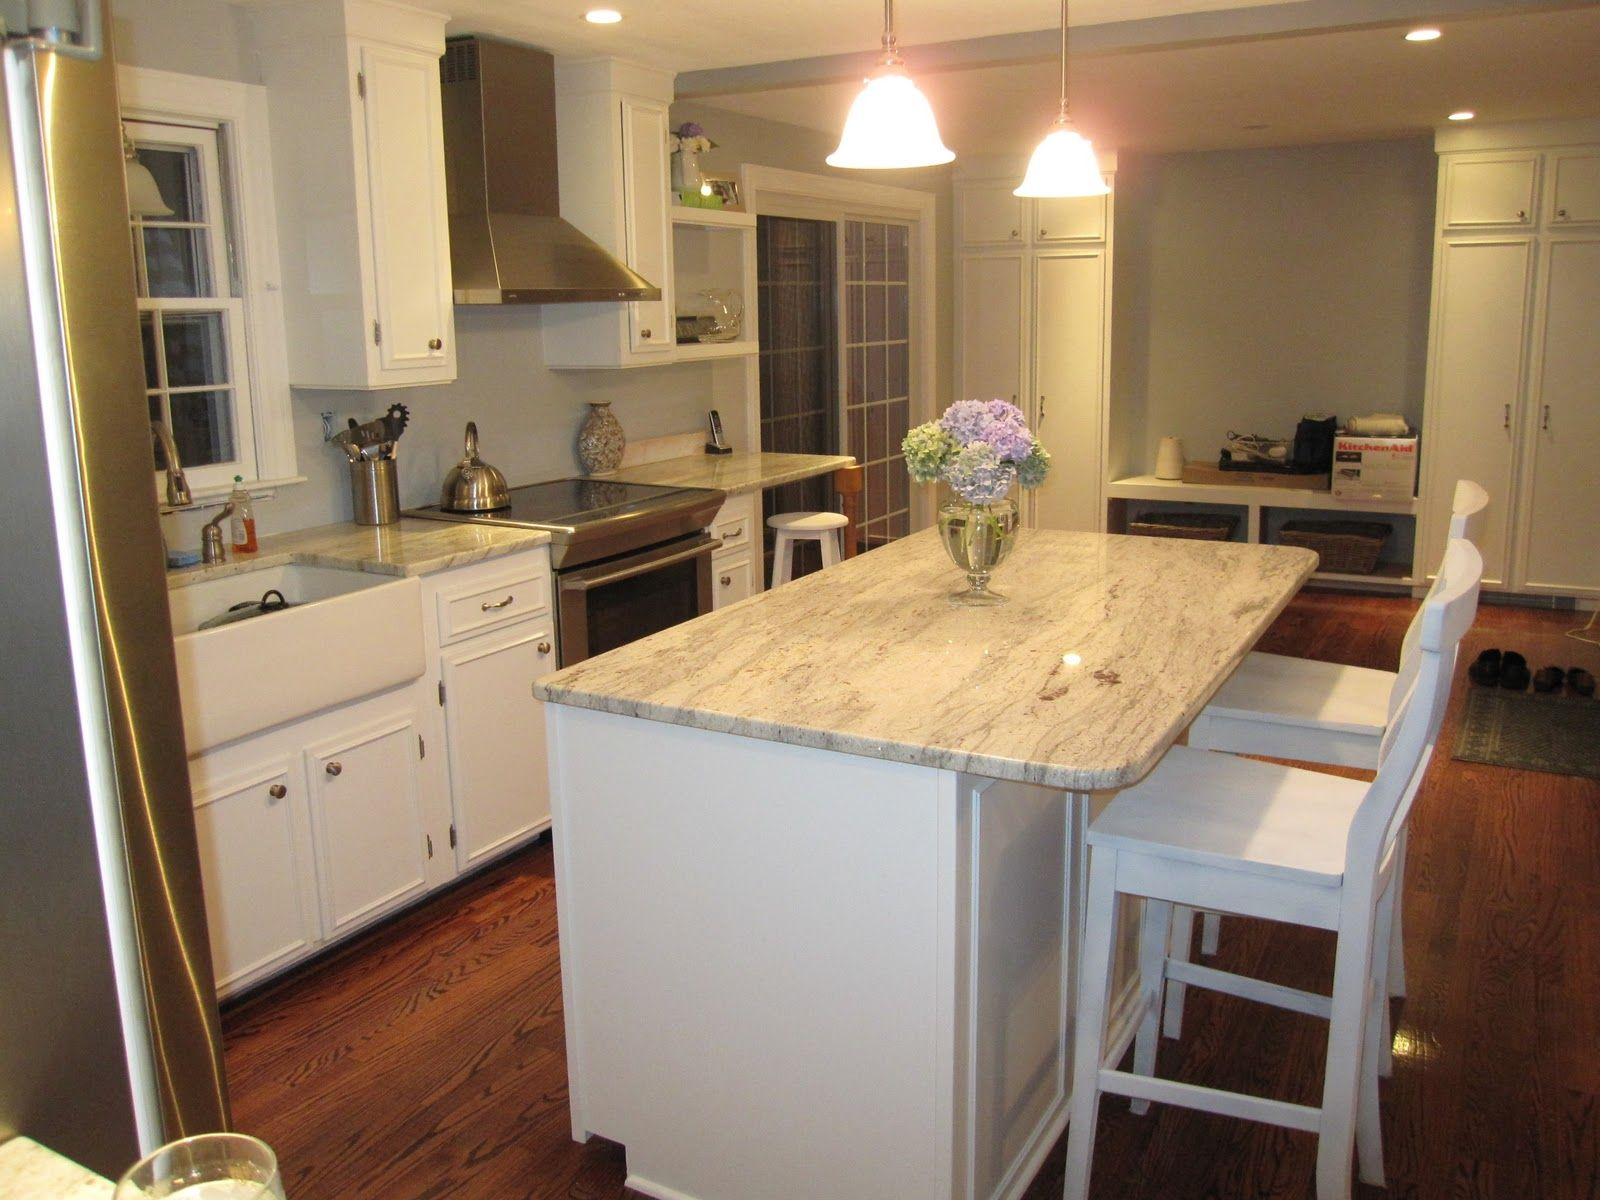 White cabinets with granite countertops diy kitchen for Kitchen white cabinets